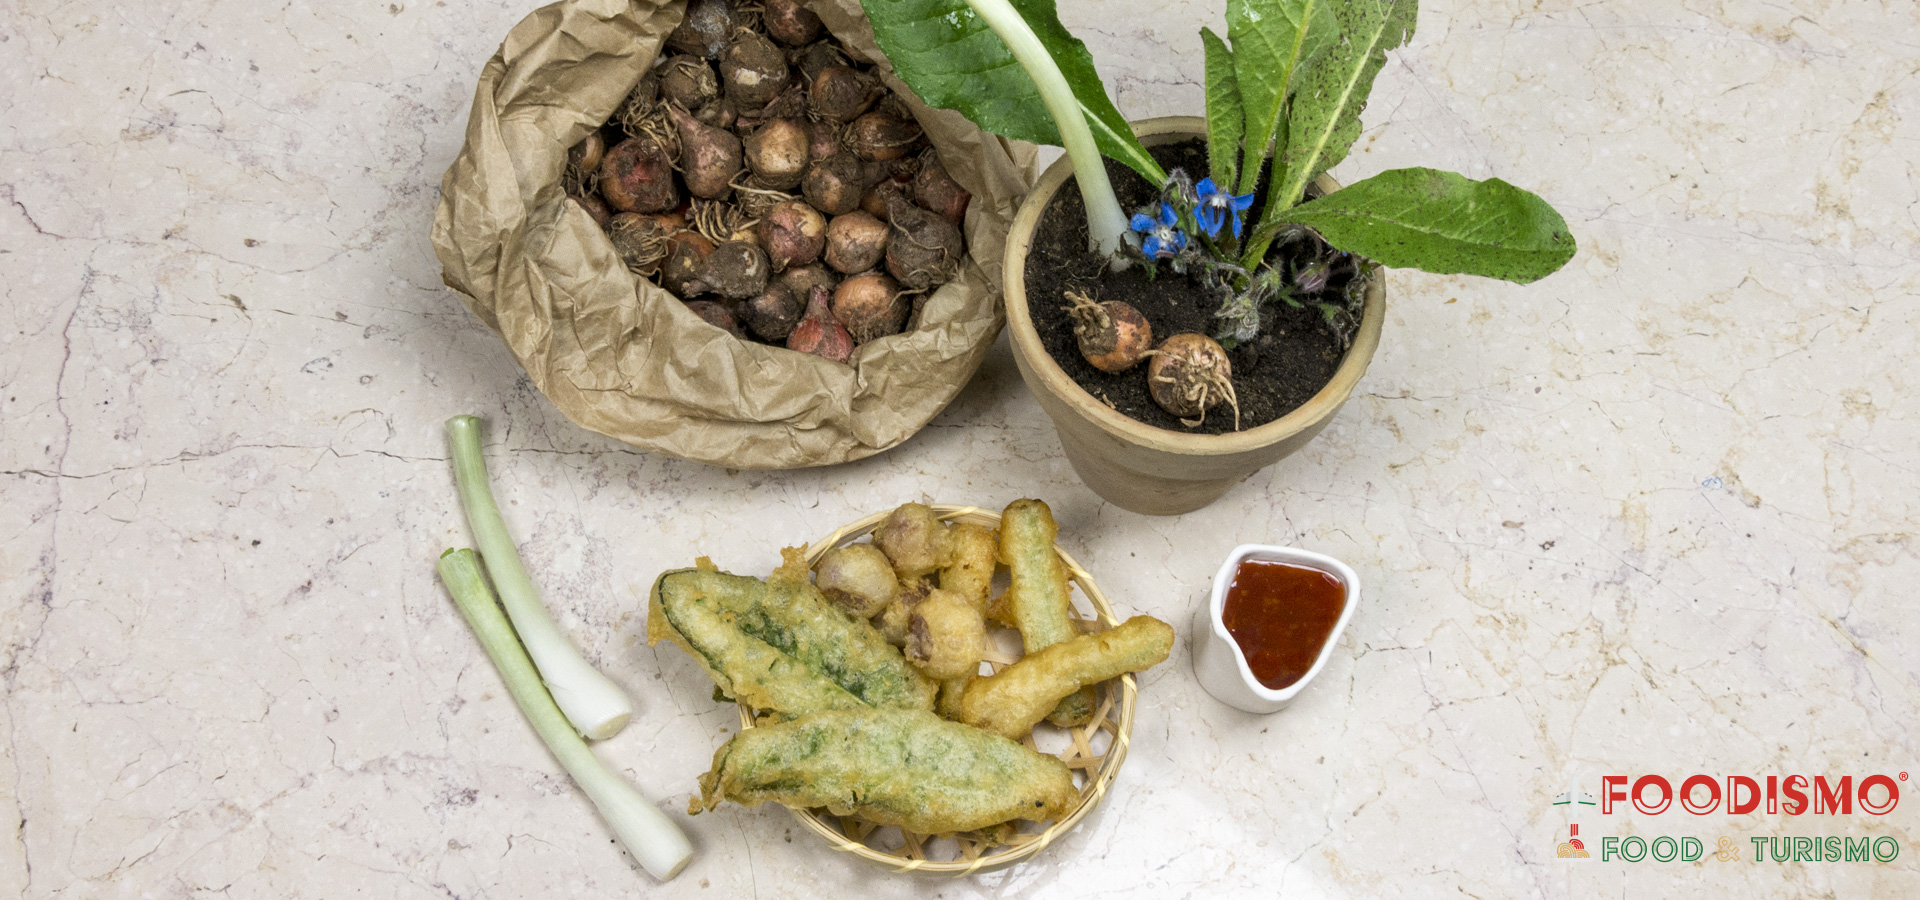 Nature in tempura: salento vegetables cooked by Ivan Tronci